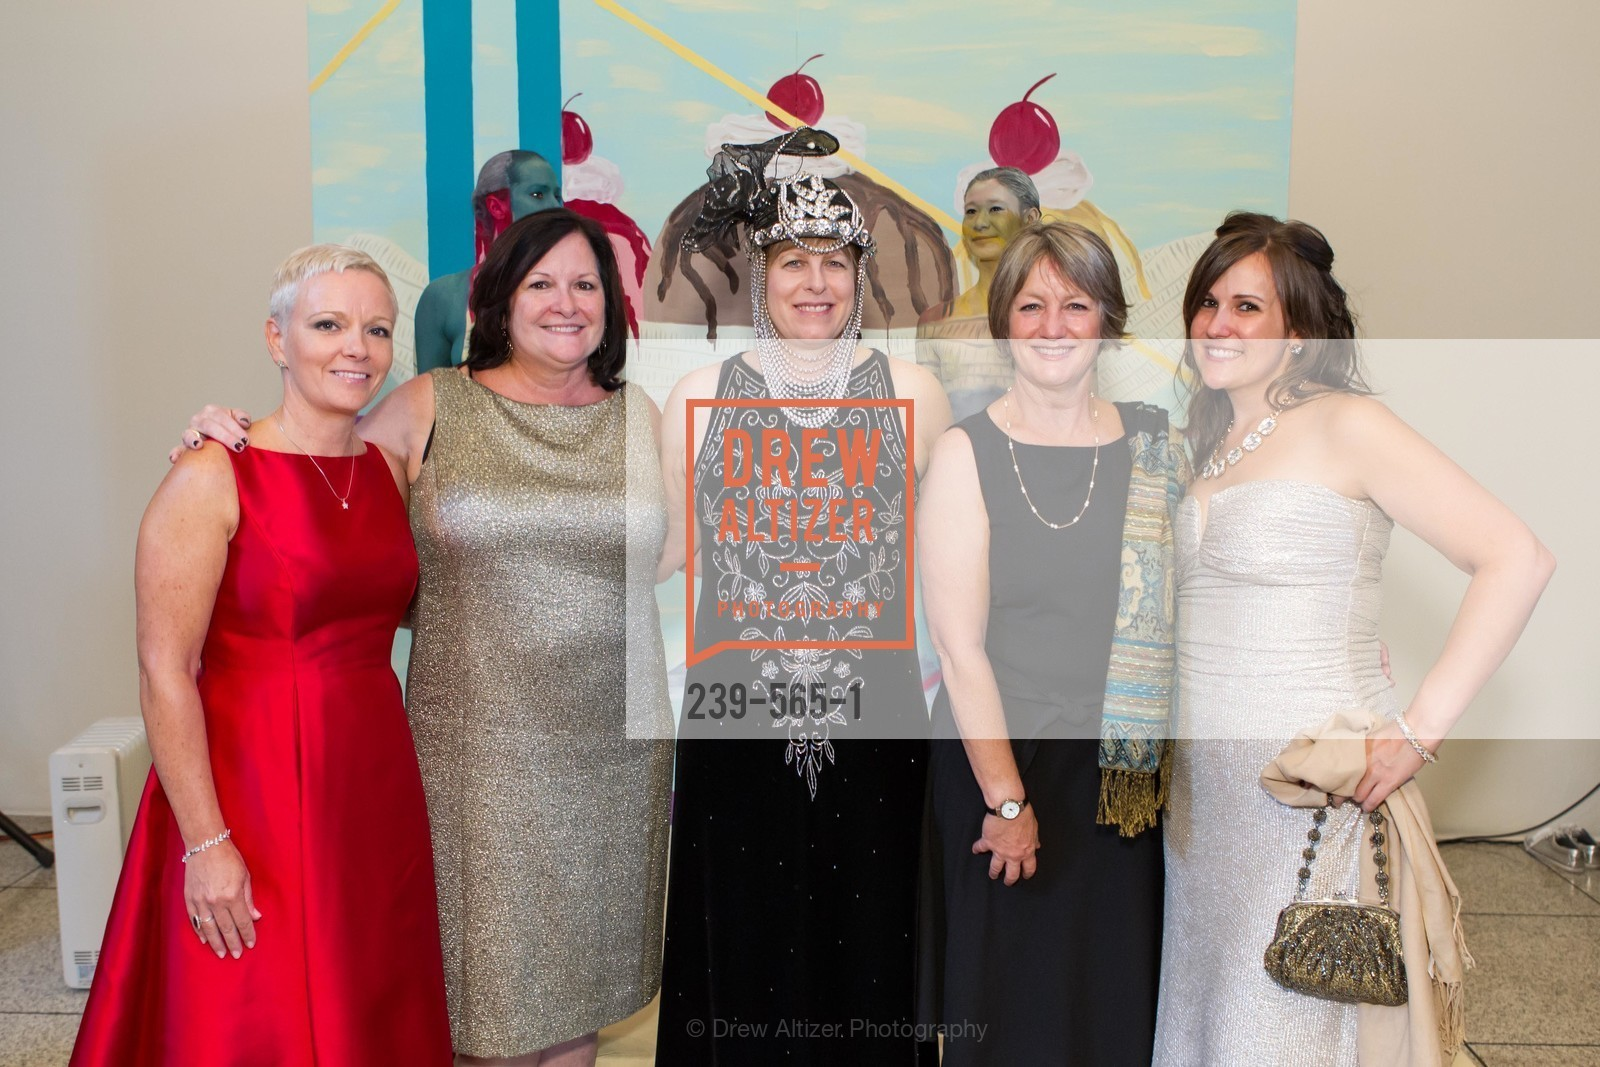 Julie Campbell, Eileen Fernandes, Cathy Woods, Amy Vaughan, GLAAD GALA Kick-Off Party Hosted by SAKS FIFTH AVENUE, Saks Fifth Avenue. 384 Post Street, September 12th, 2014,Drew Altizer, Drew Altizer Photography, full-service agency, private events, San Francisco photographer, photographer california